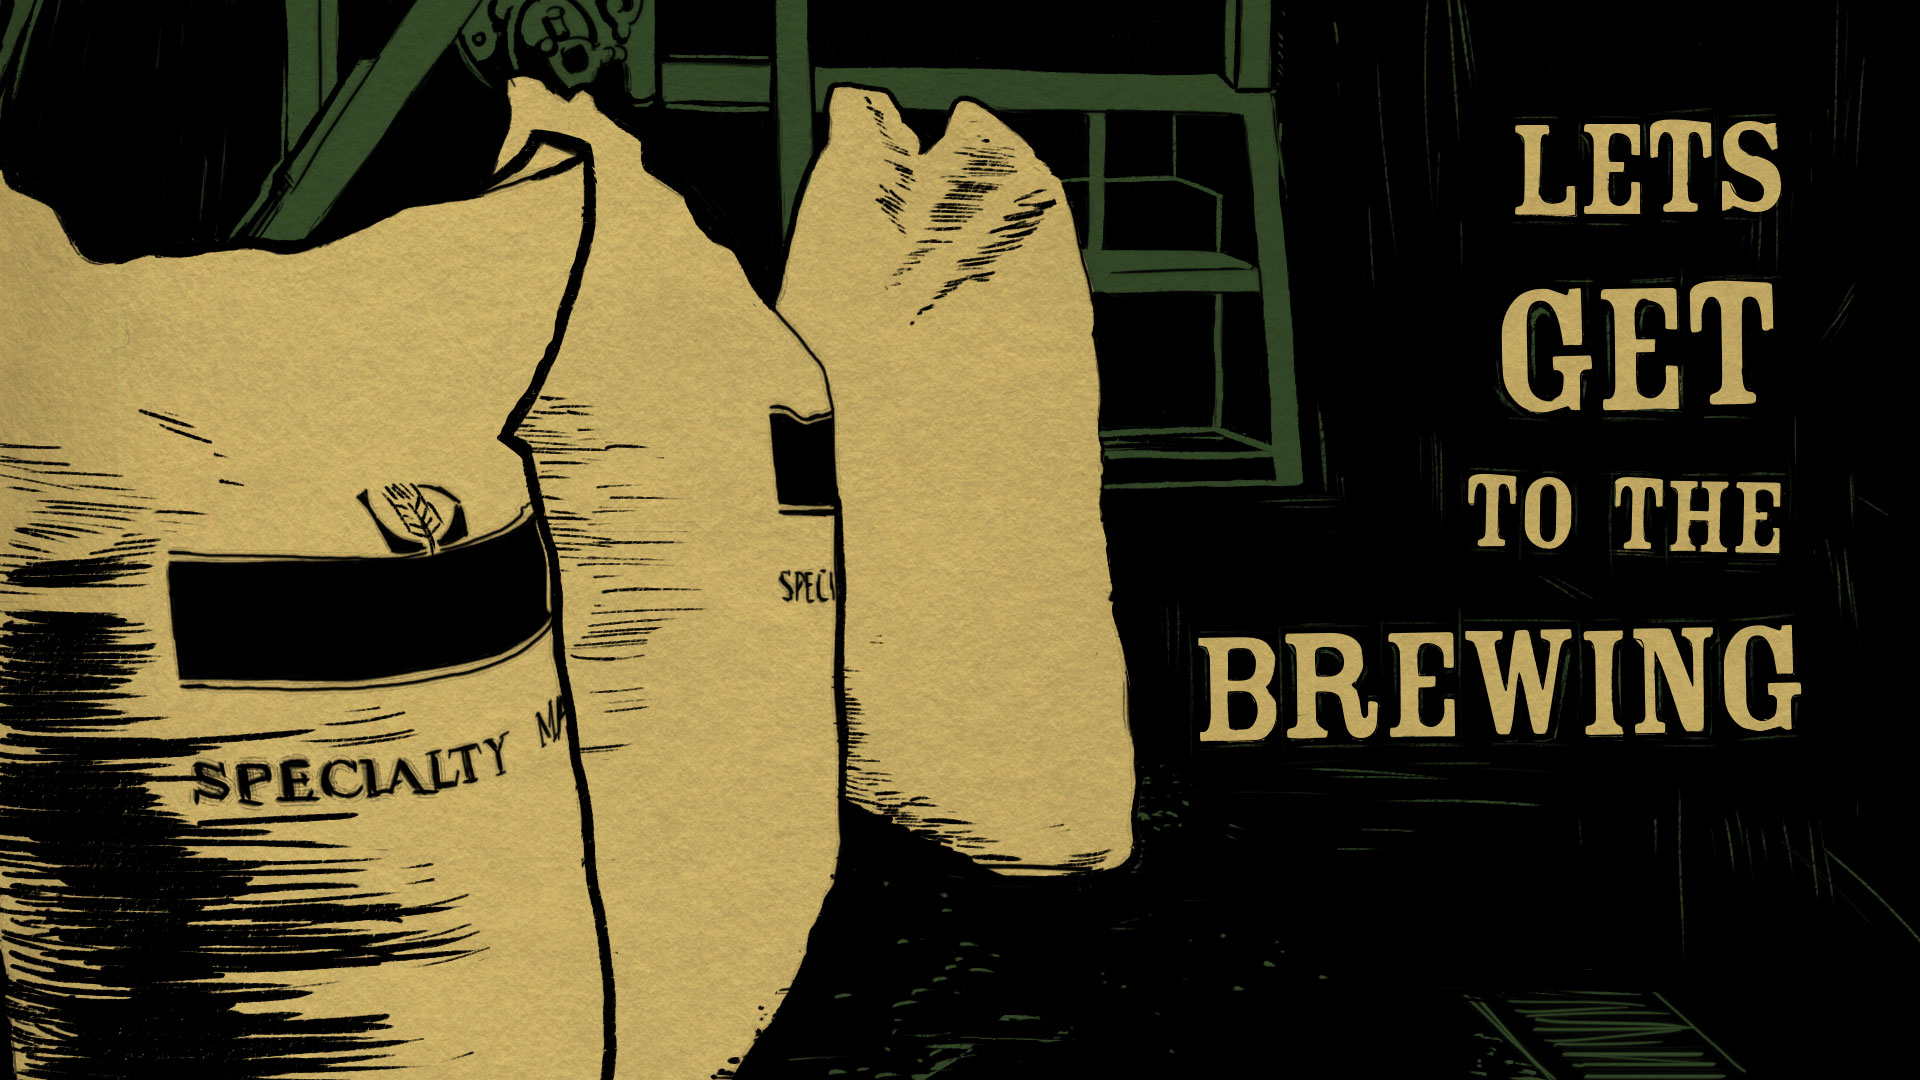 Let's get to the brewing Title Card.